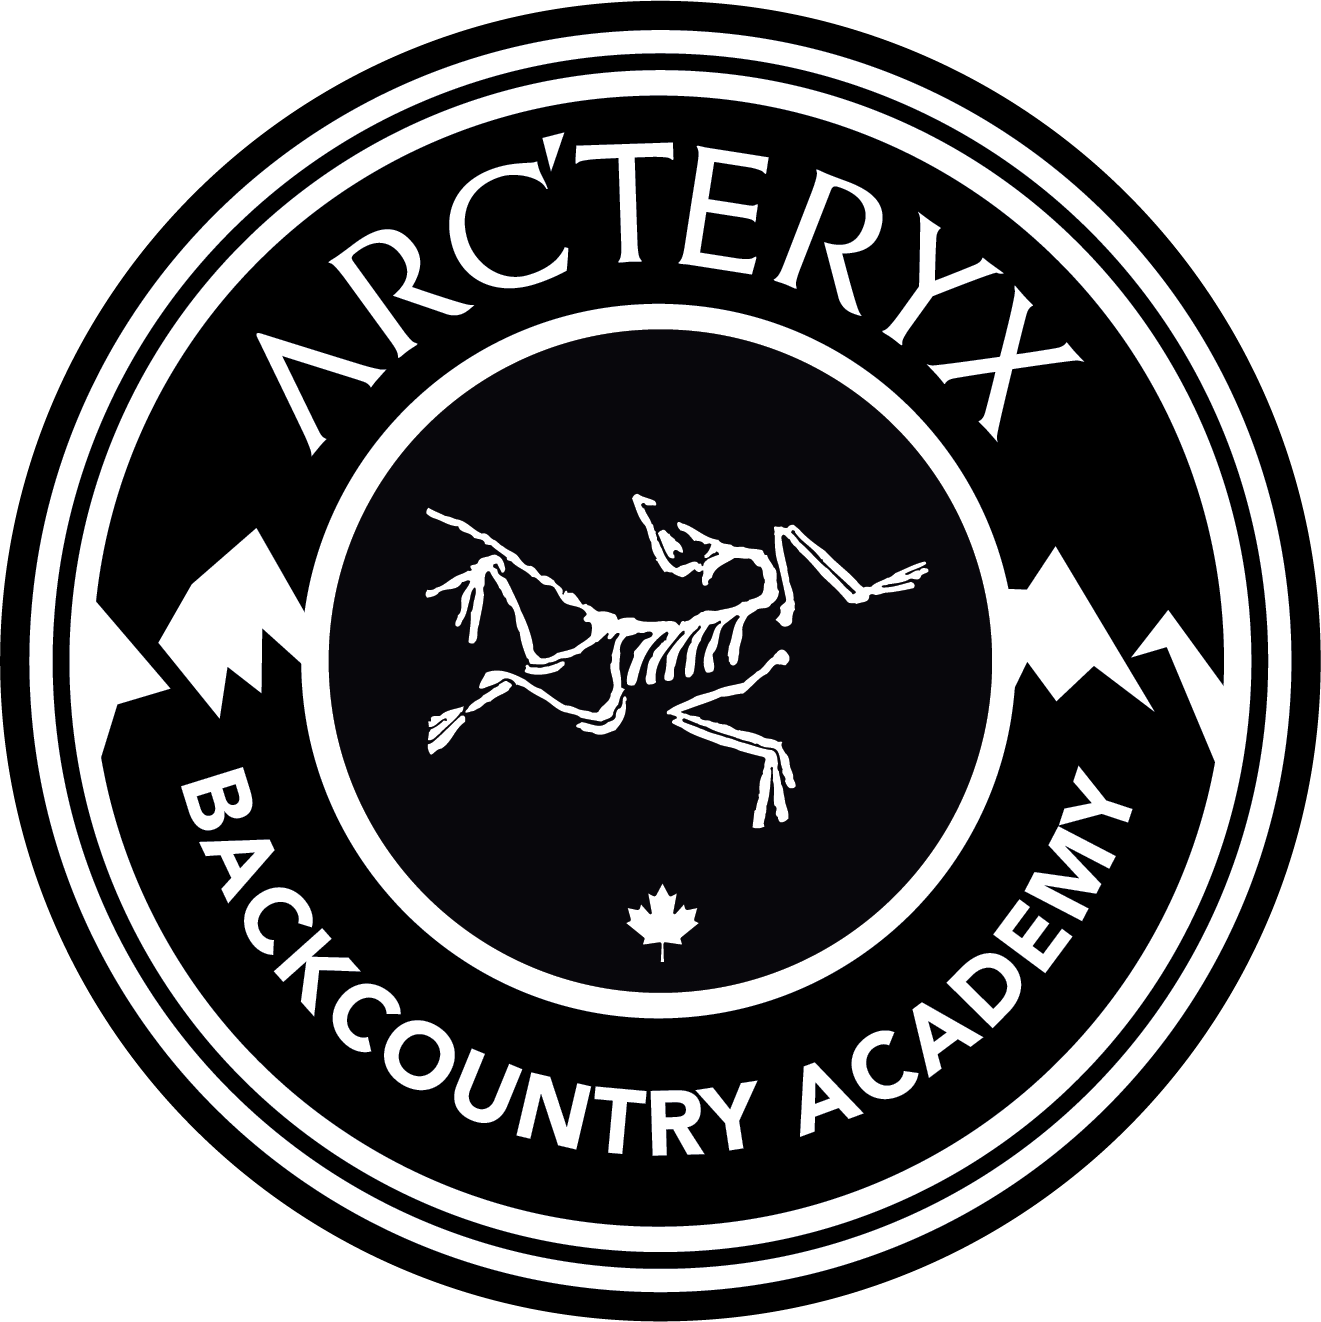 Backcountry Academy